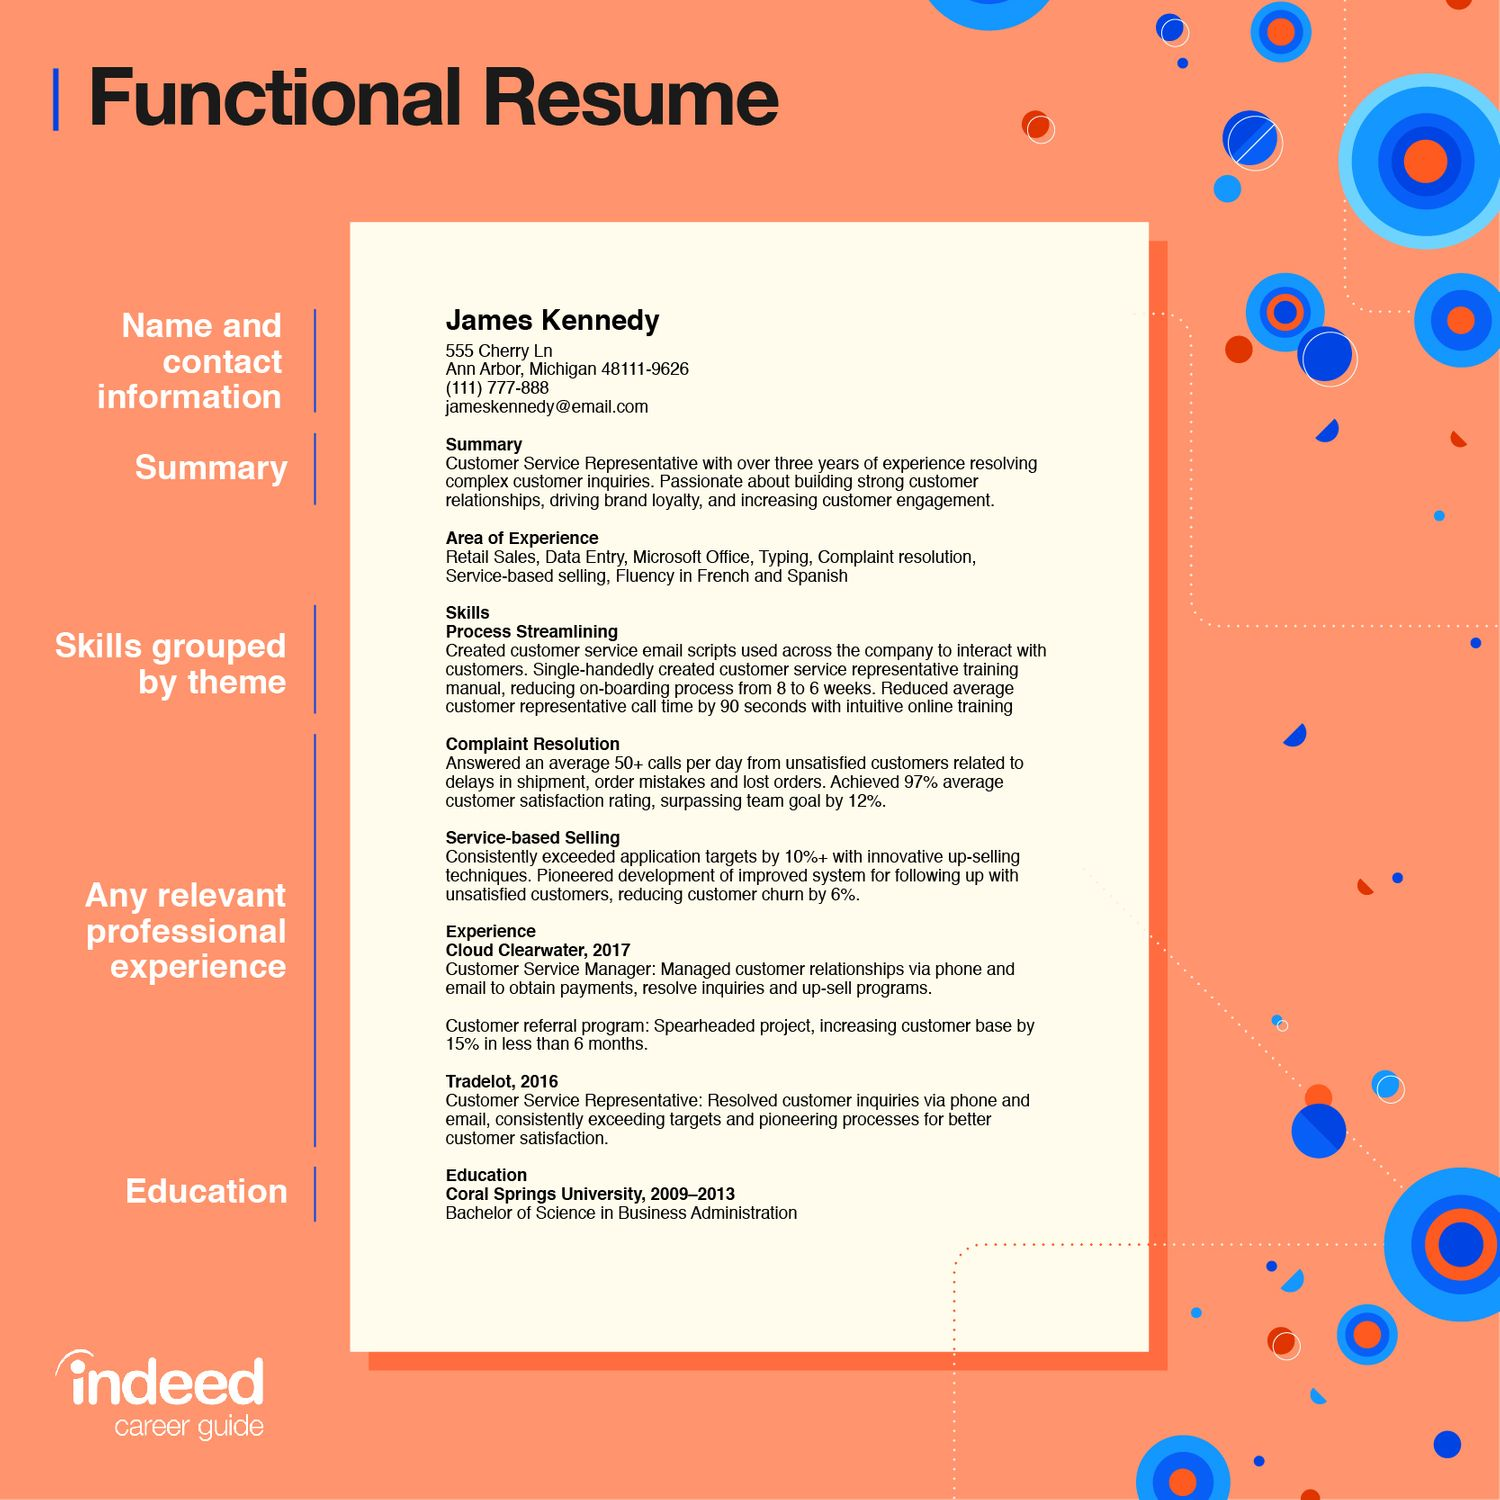 functional resume definition tips and examples indeed professional resized reddit design Resume Professional Resume Definition